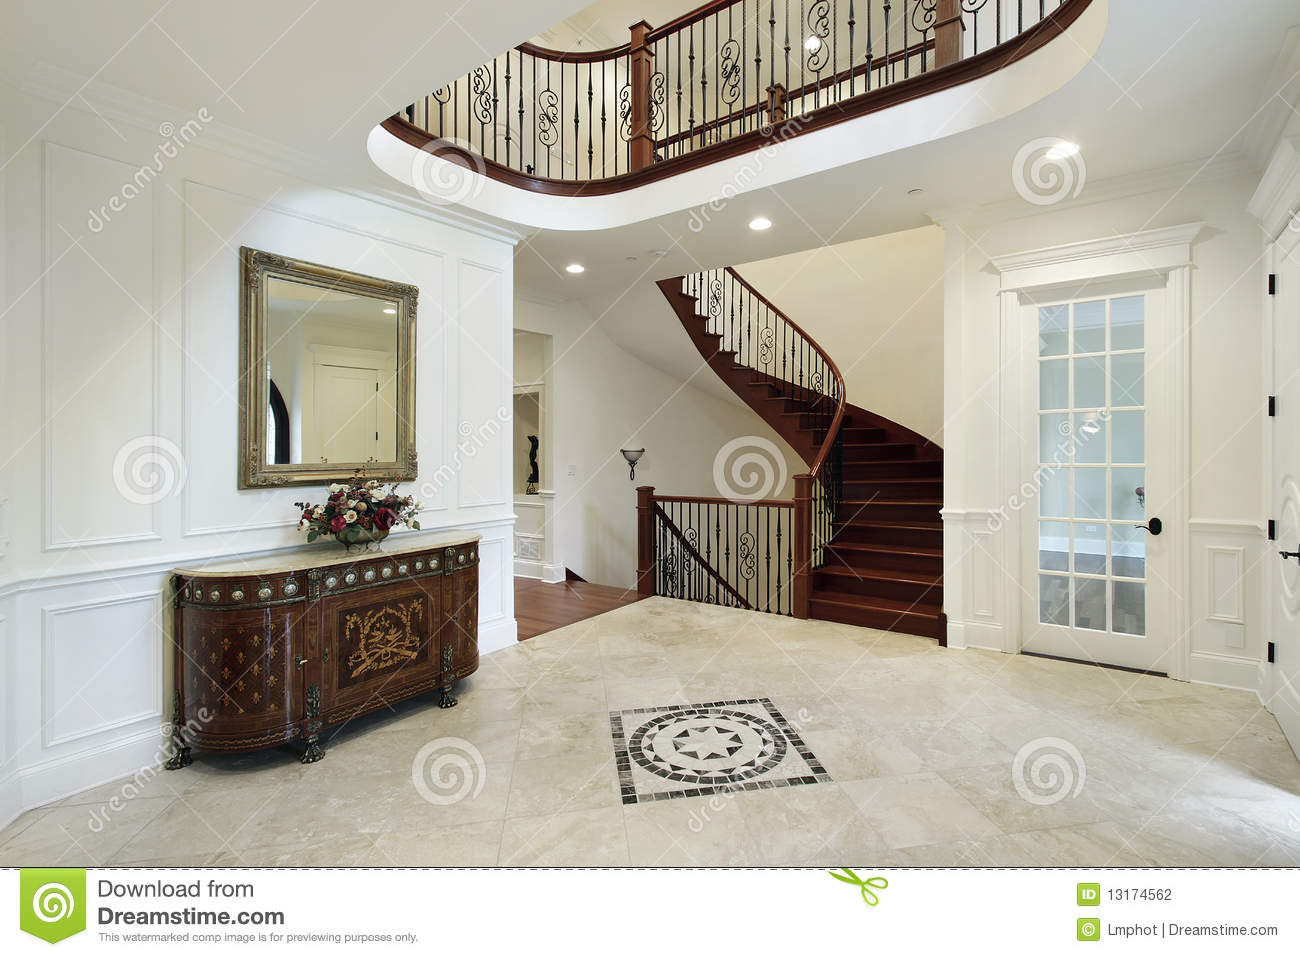 Foyer With Floor Design Stock Photography Image 13174562